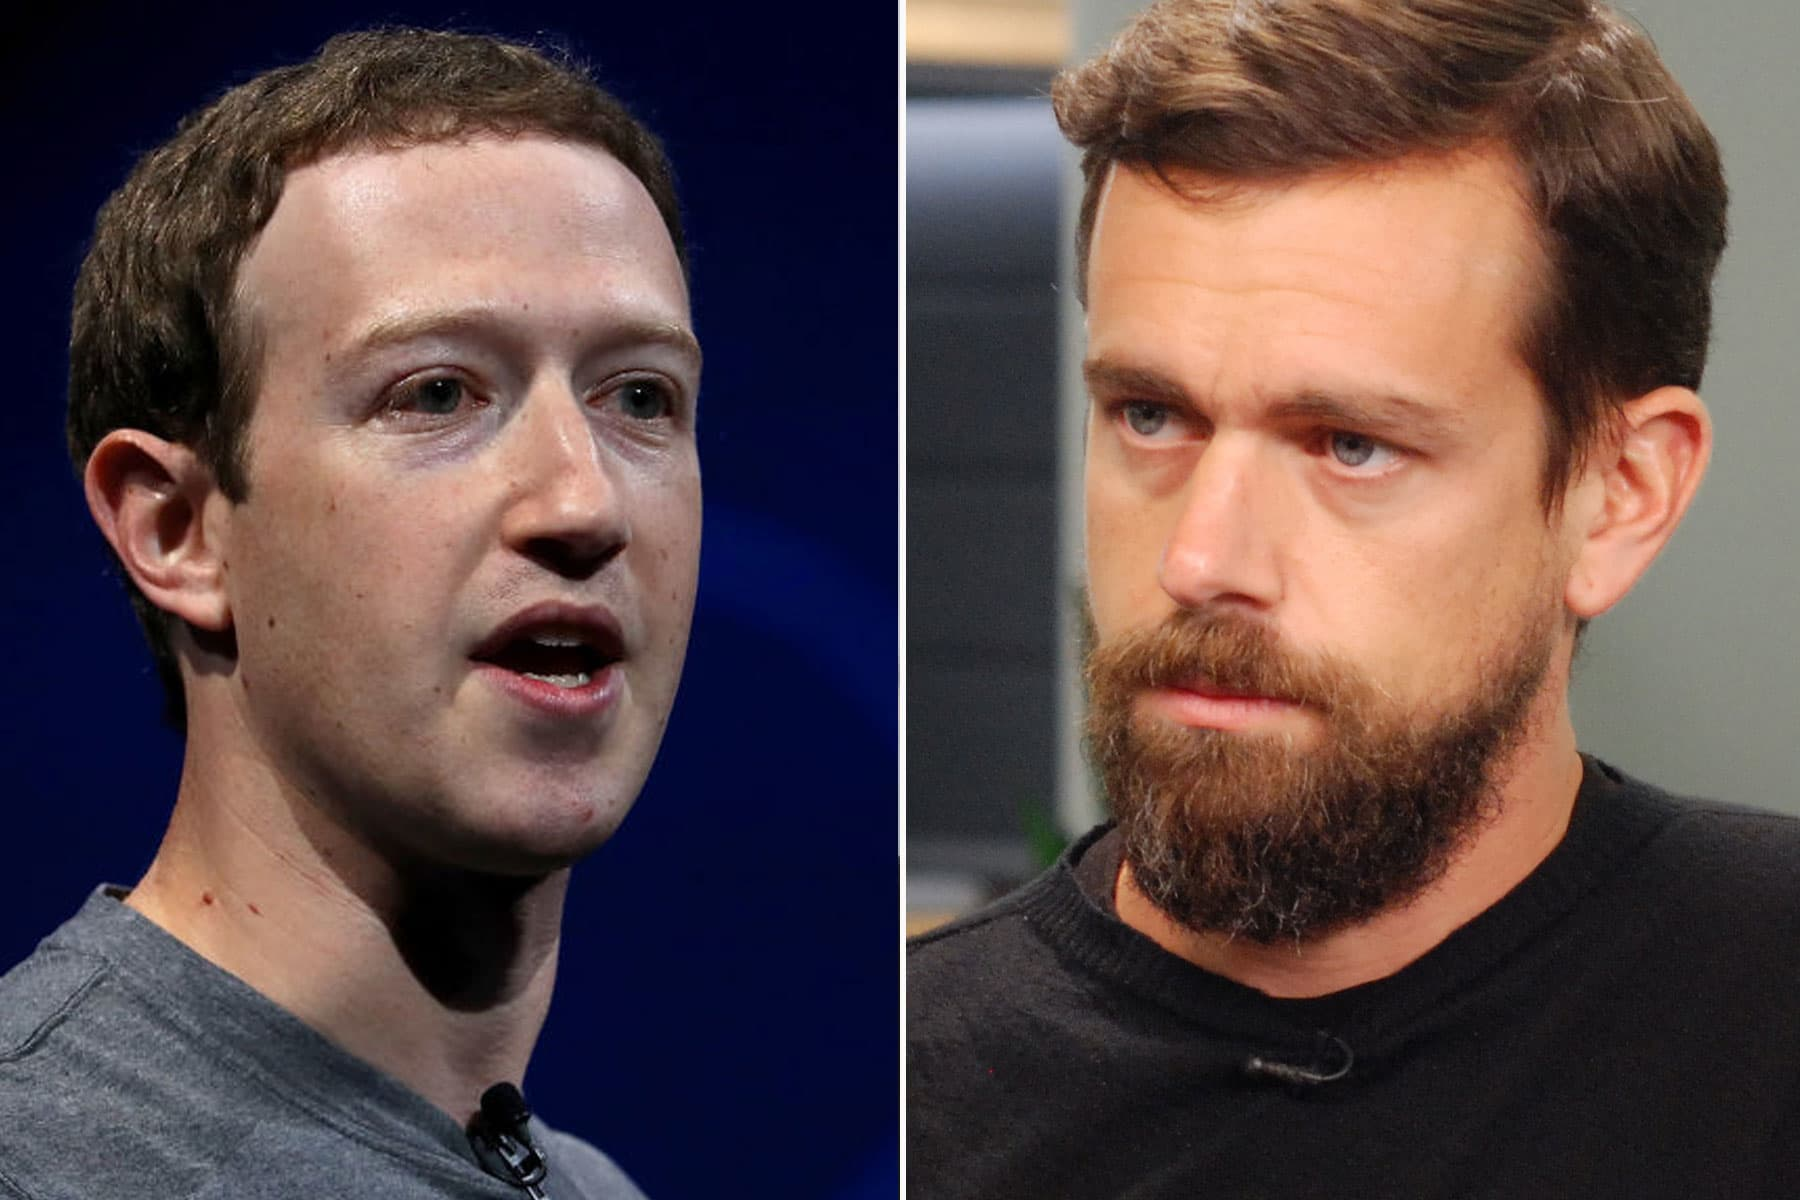 Mark Zuckerberg vs. Jack Dorsey is the most interesting battle in Silicon Valley - CNBC